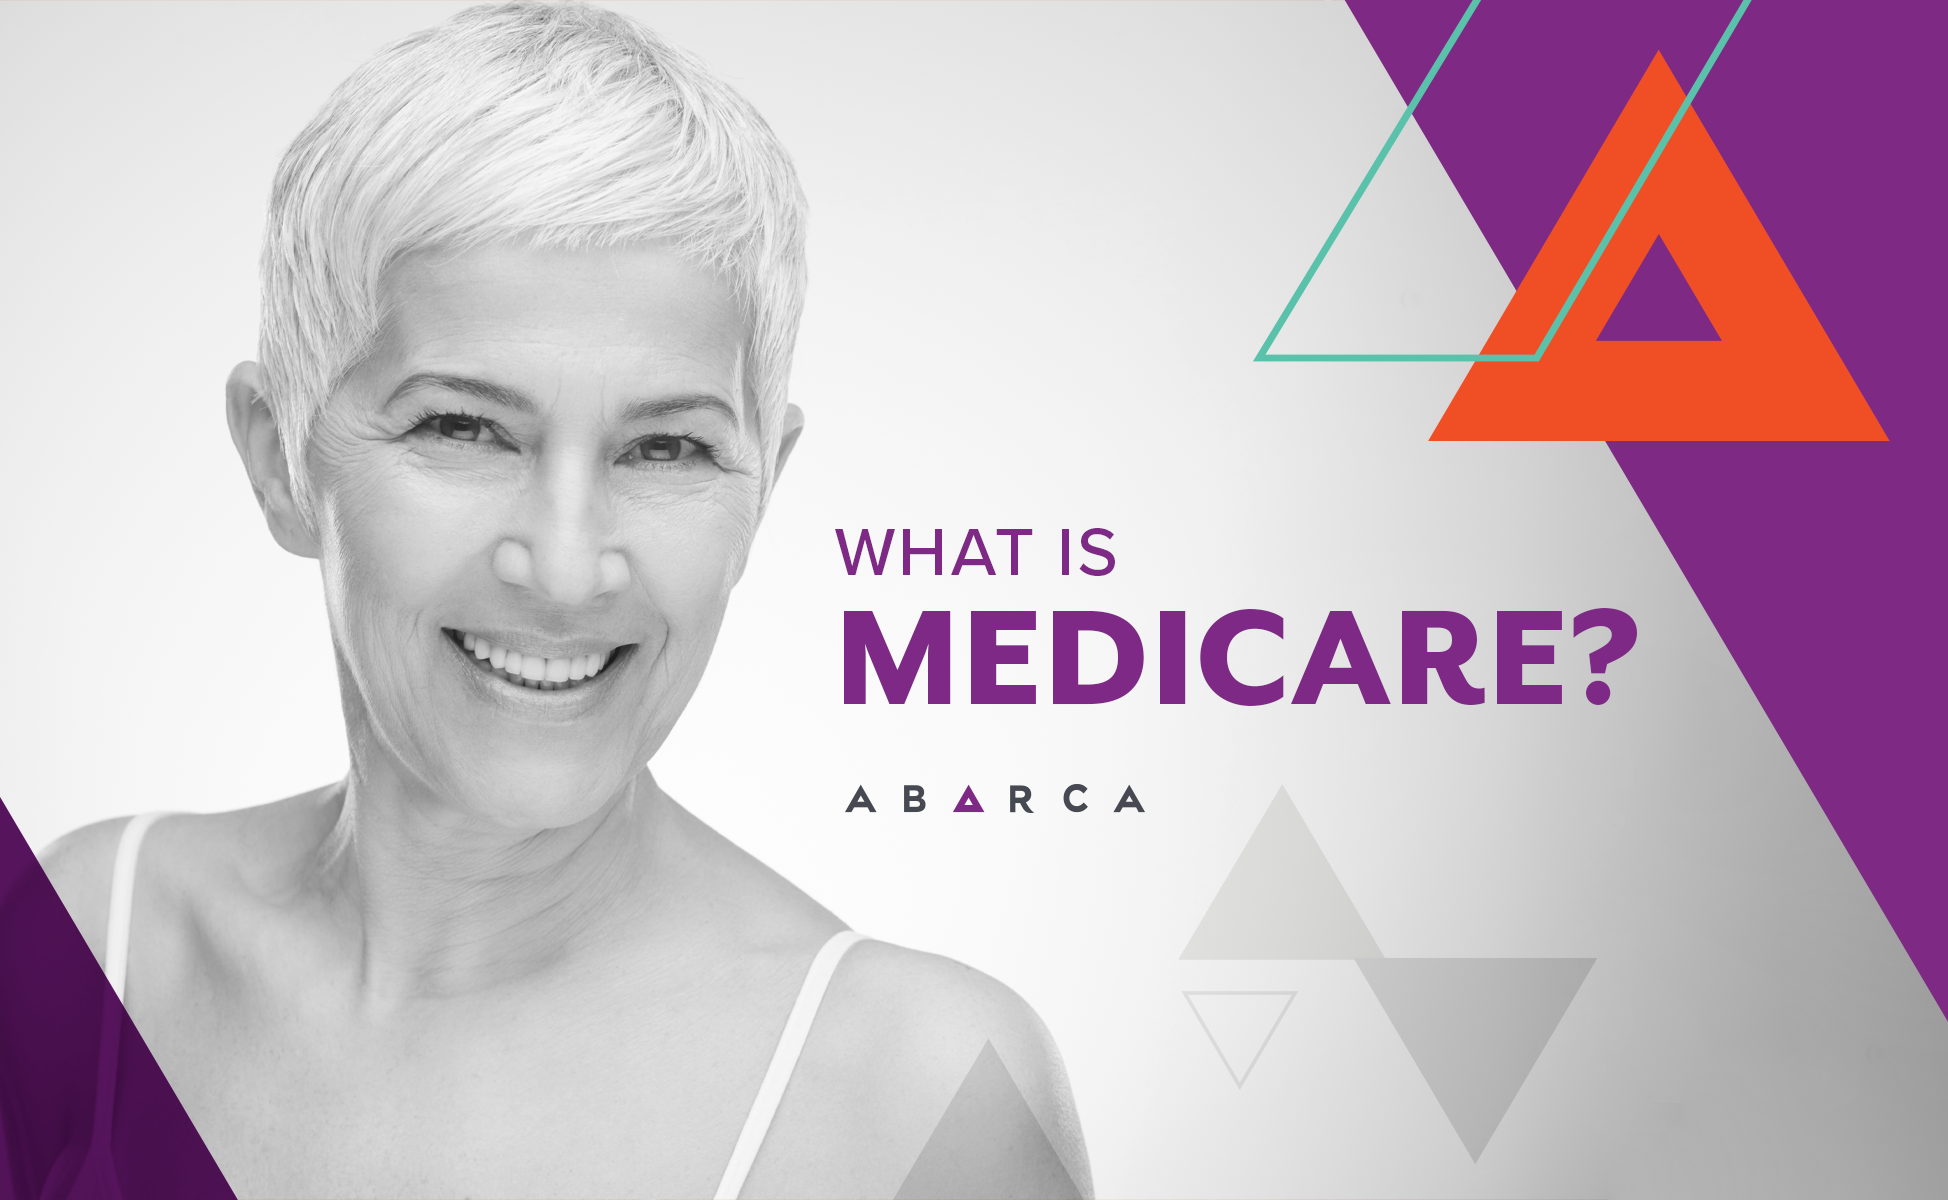 Abarca Health: What is Medicare?